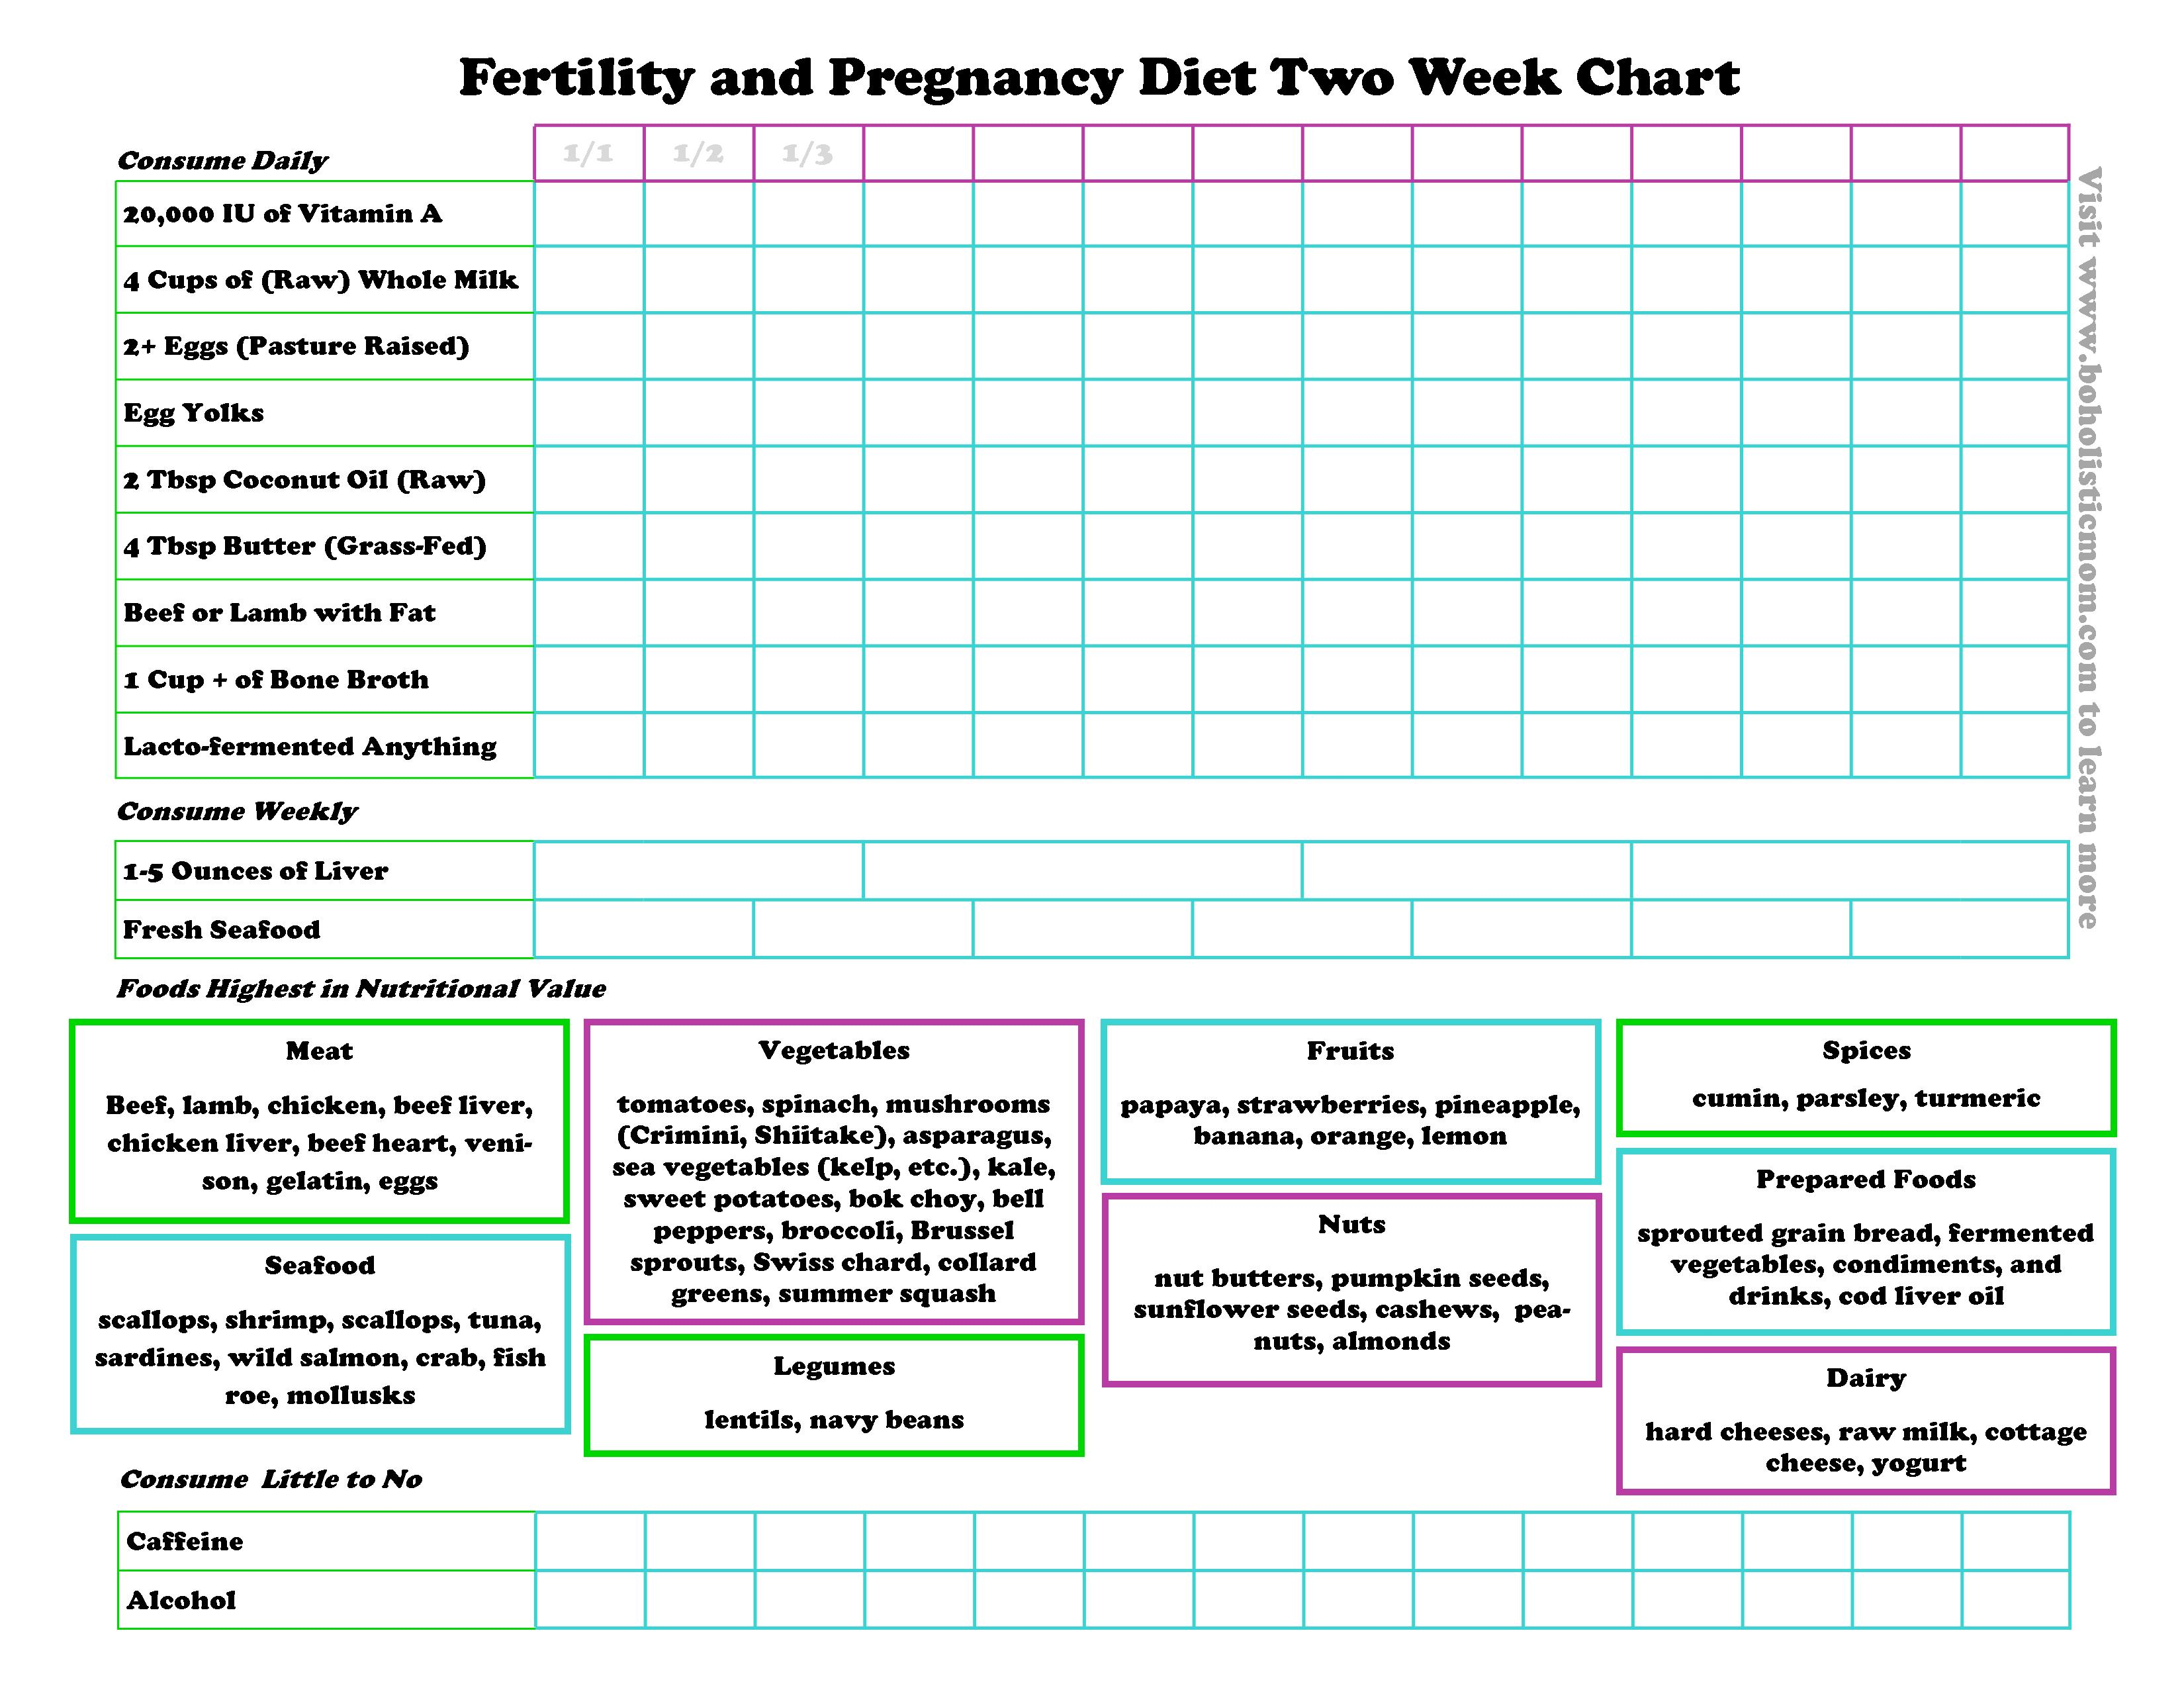 Boholistic mom fertility diet the plan for a healthy pregnancy fertility diet and pregnancy diet boholistic mom nvjuhfo Image collections